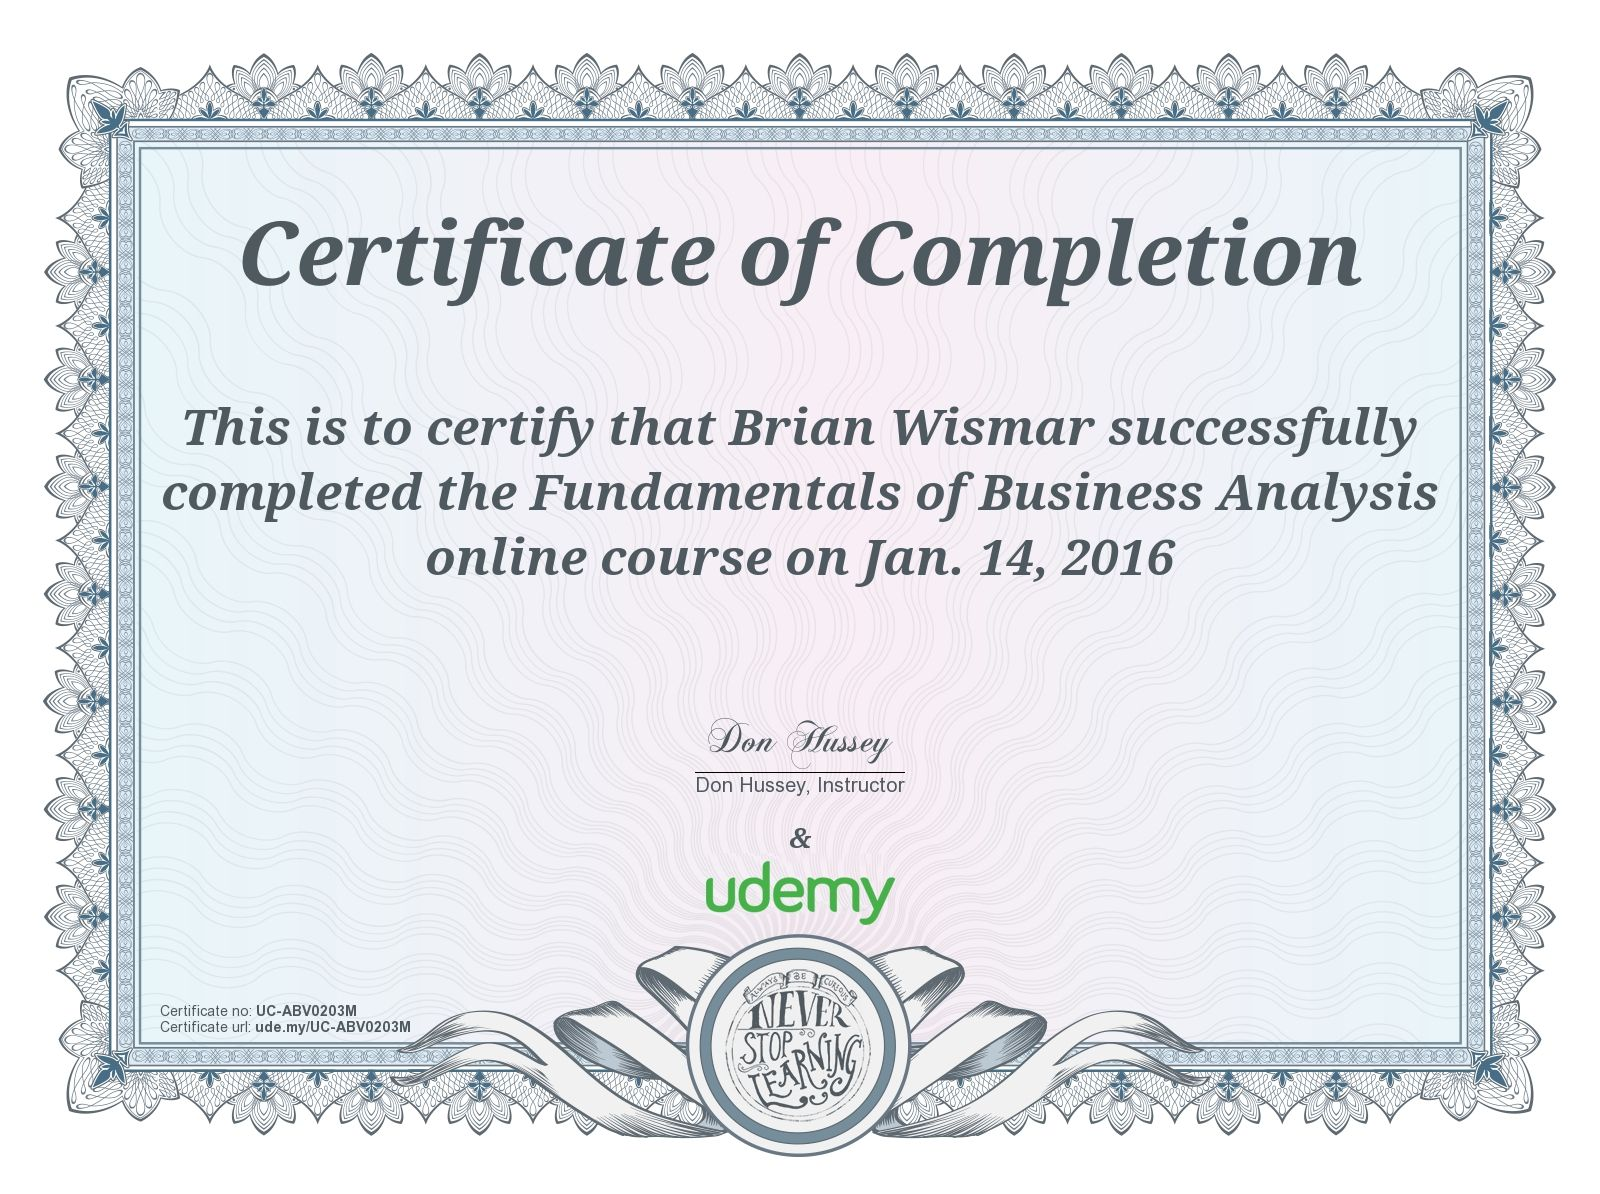 Completion Certificate For Fundamentals Of Business Analysis